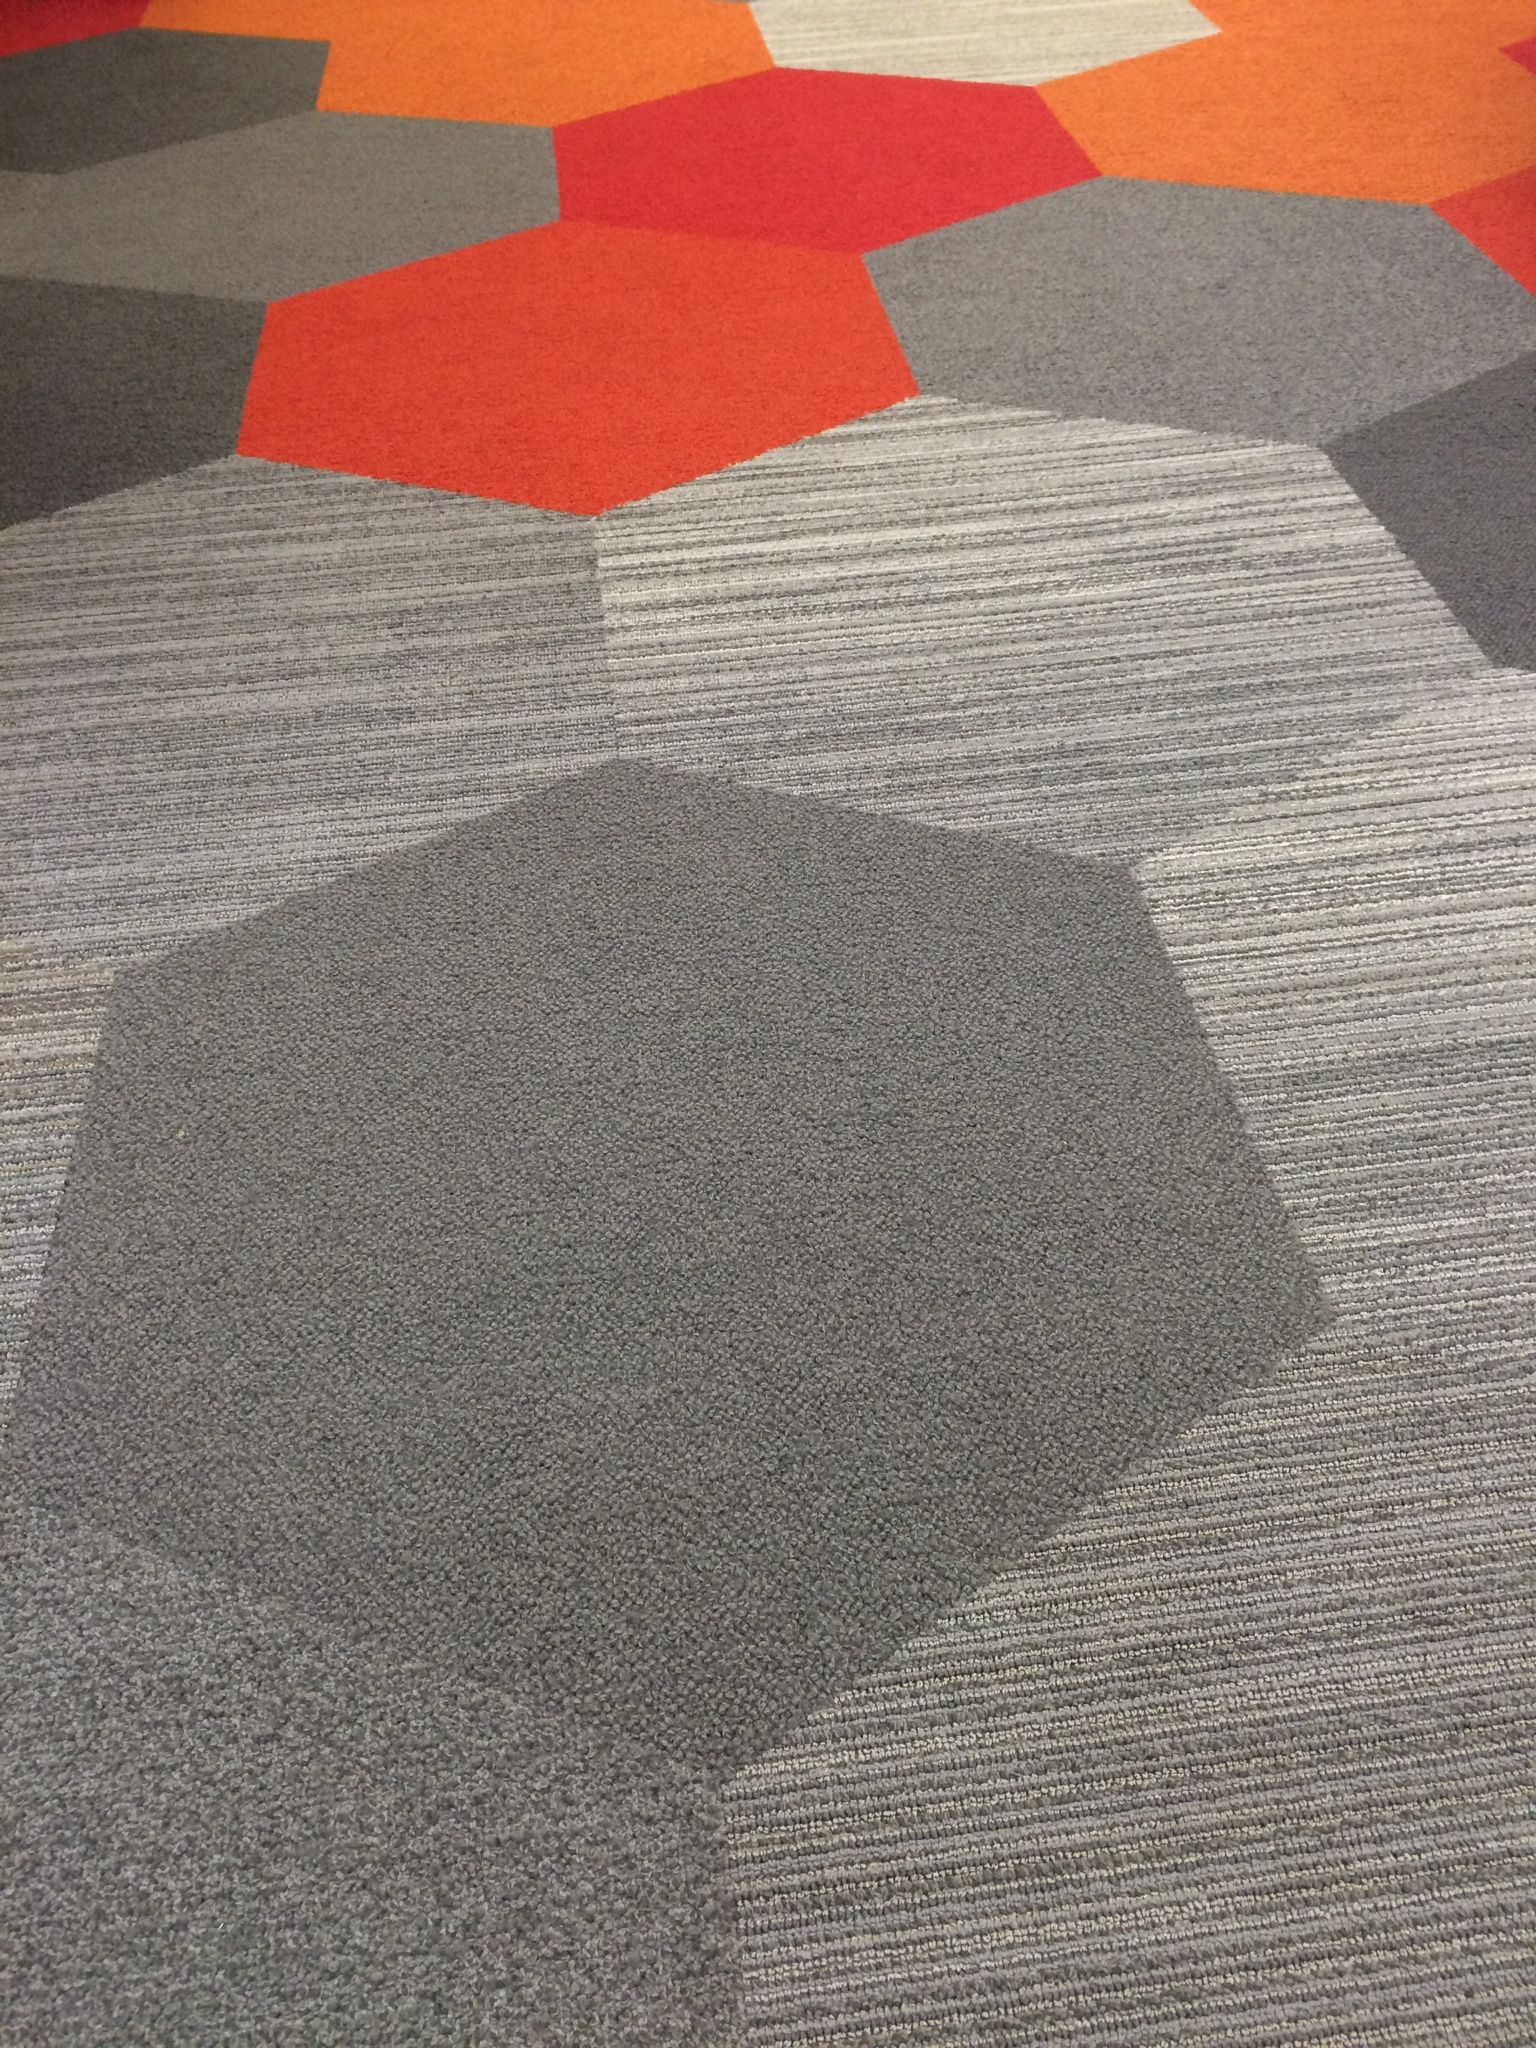 Installation Of Hexagon Plane And Linear Carpet Tiles